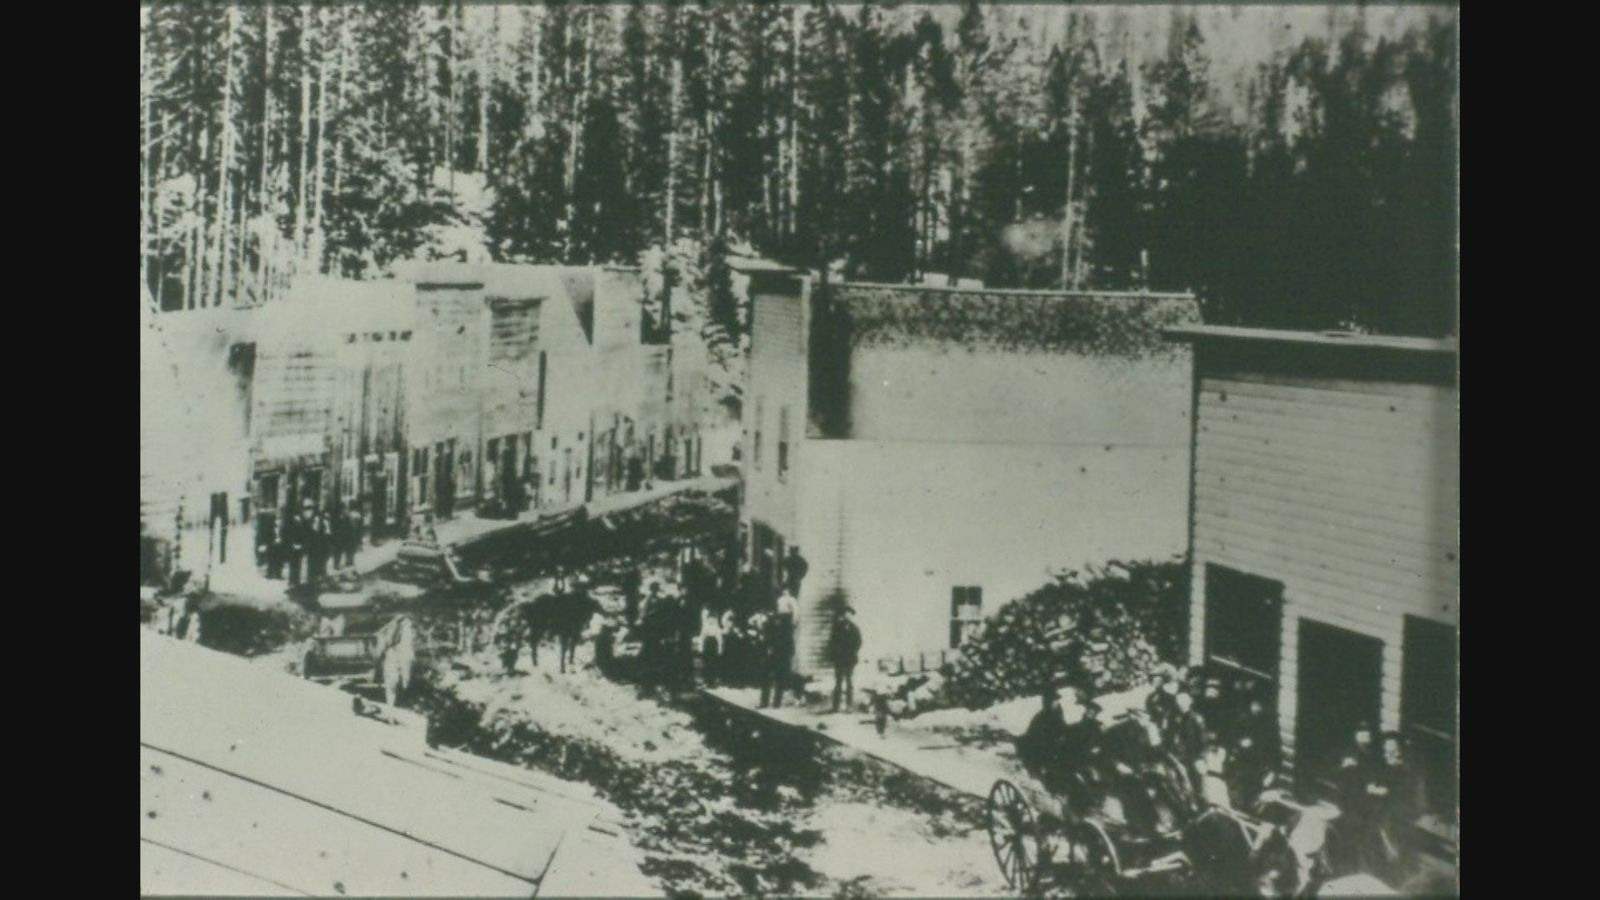 (Photo:courtesy Butte Bureau of Land Management) A street view of the busy town.